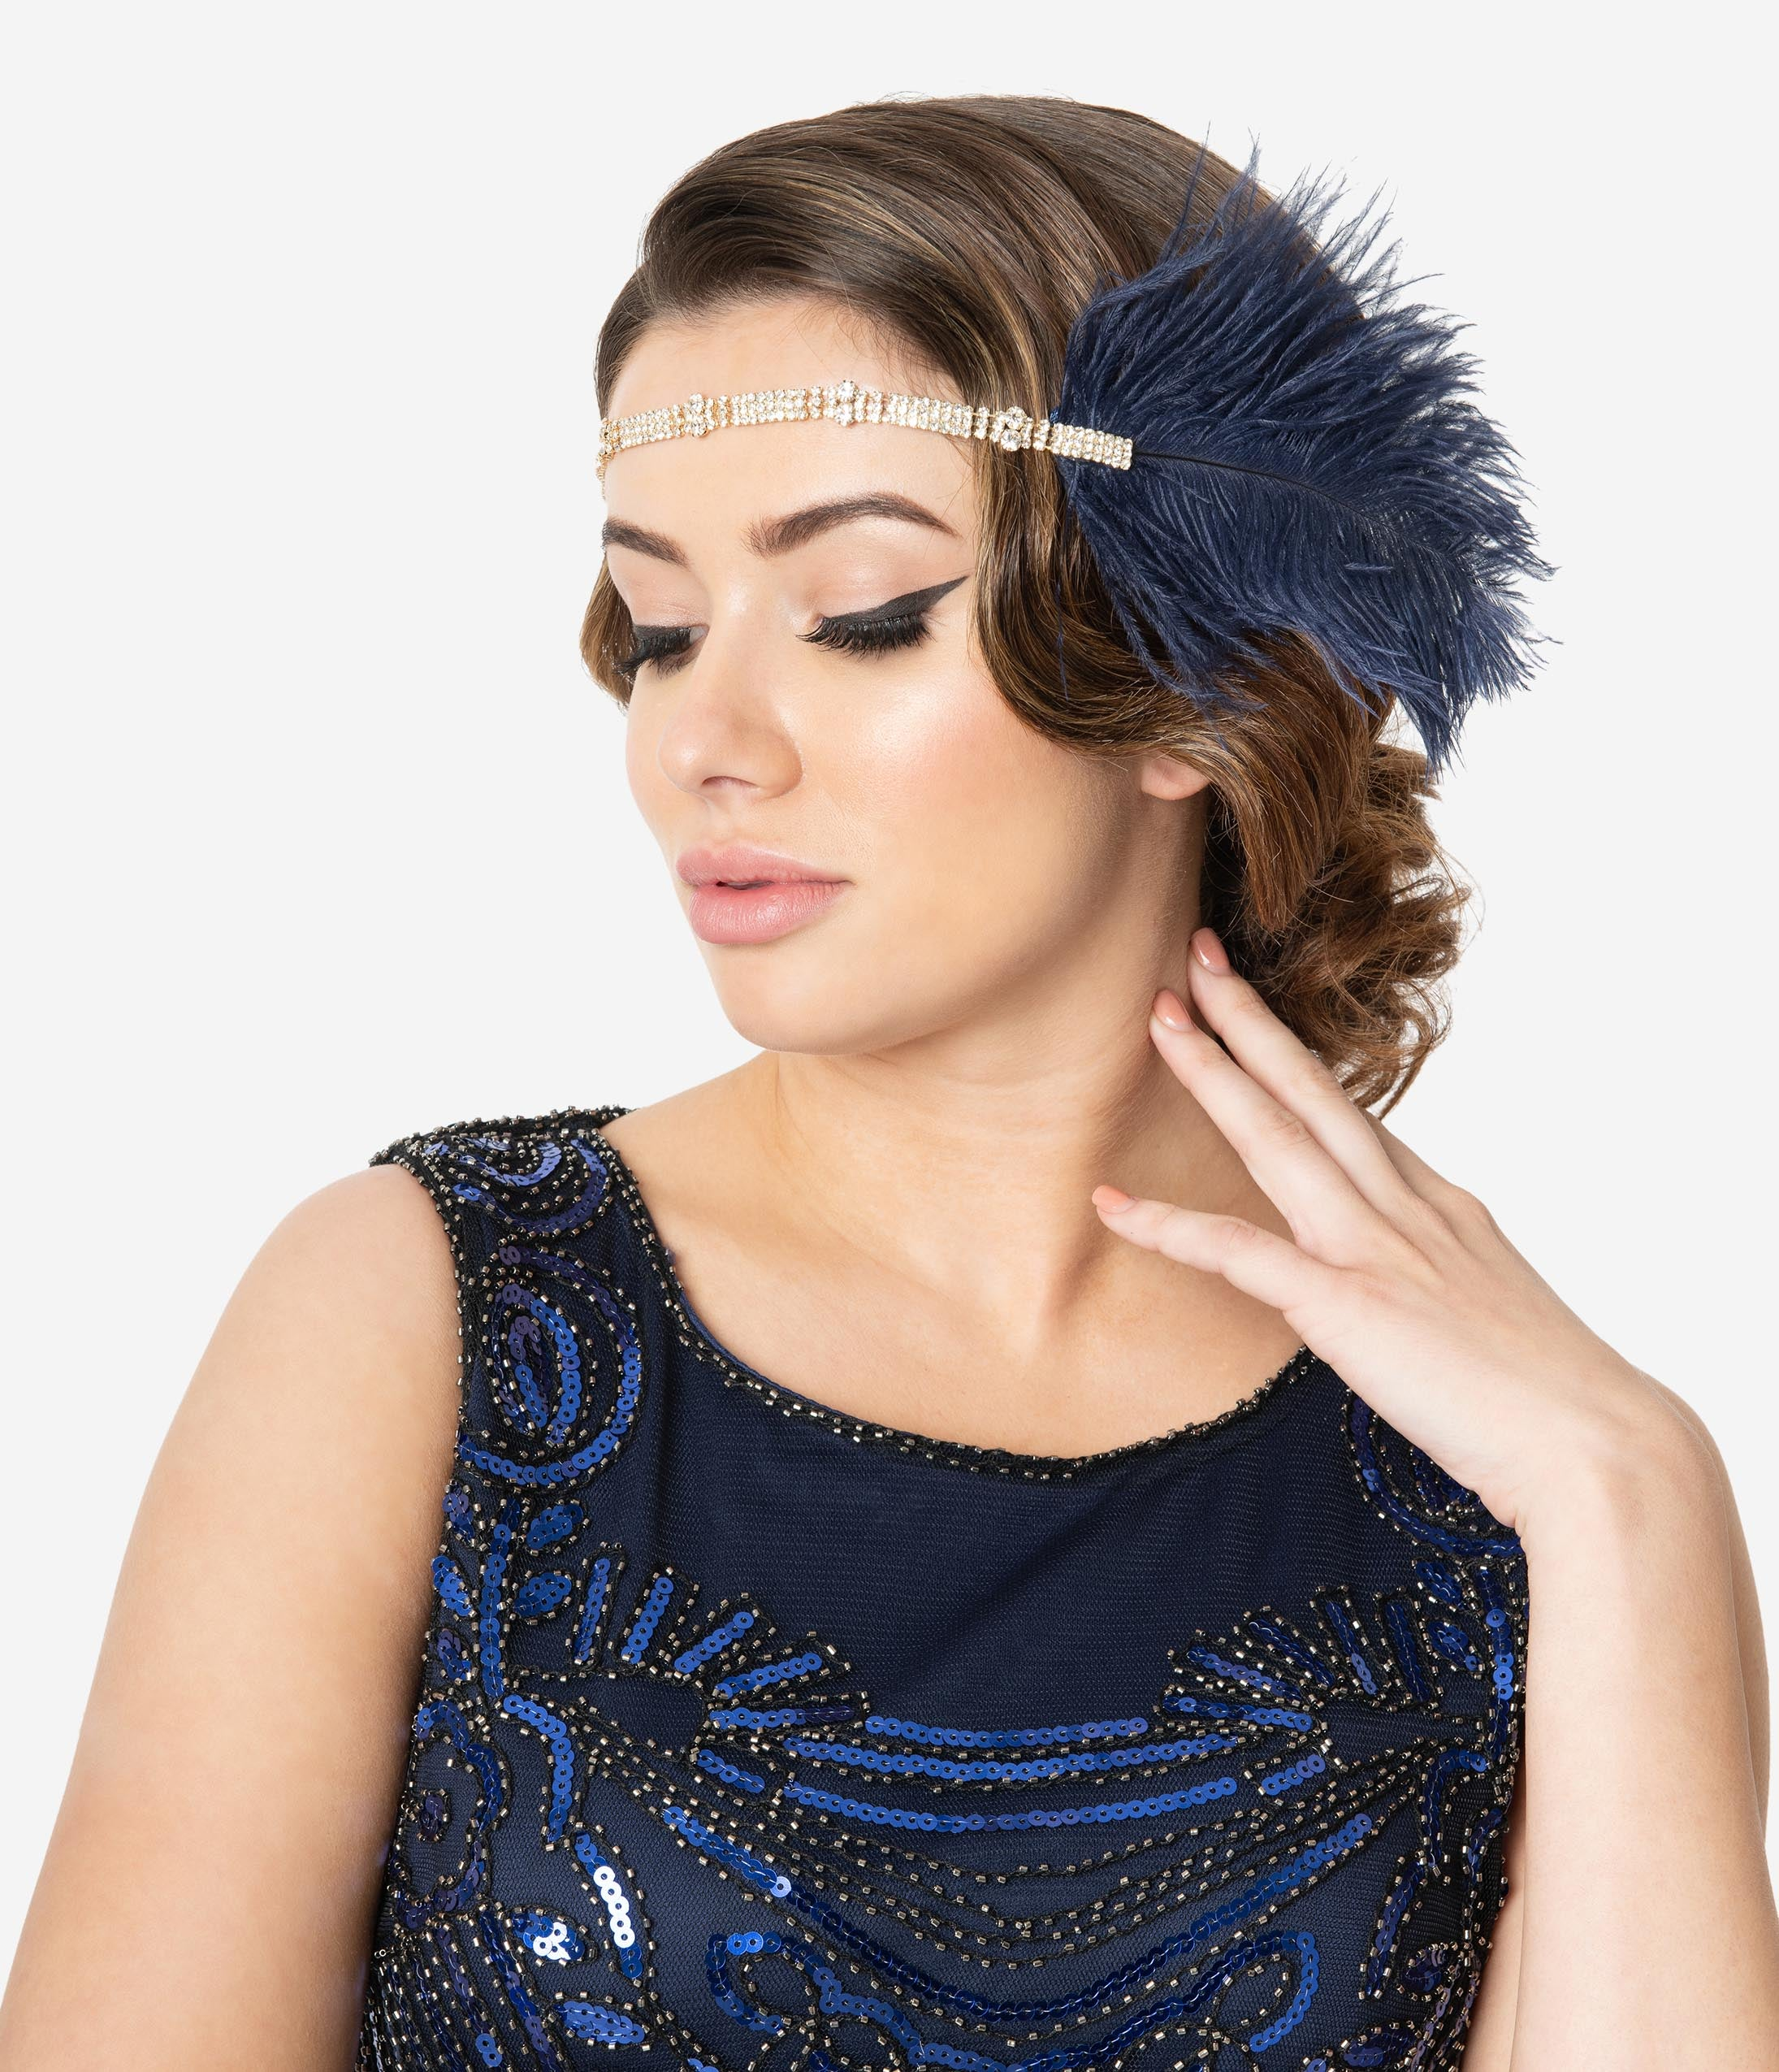 1920s Flapper Headband, Gatsby Headpiece, Wigs Navy Blue Feather  Silver Rhinestone Anastasia Flapper Headband $34.00 AT vintagedancer.com